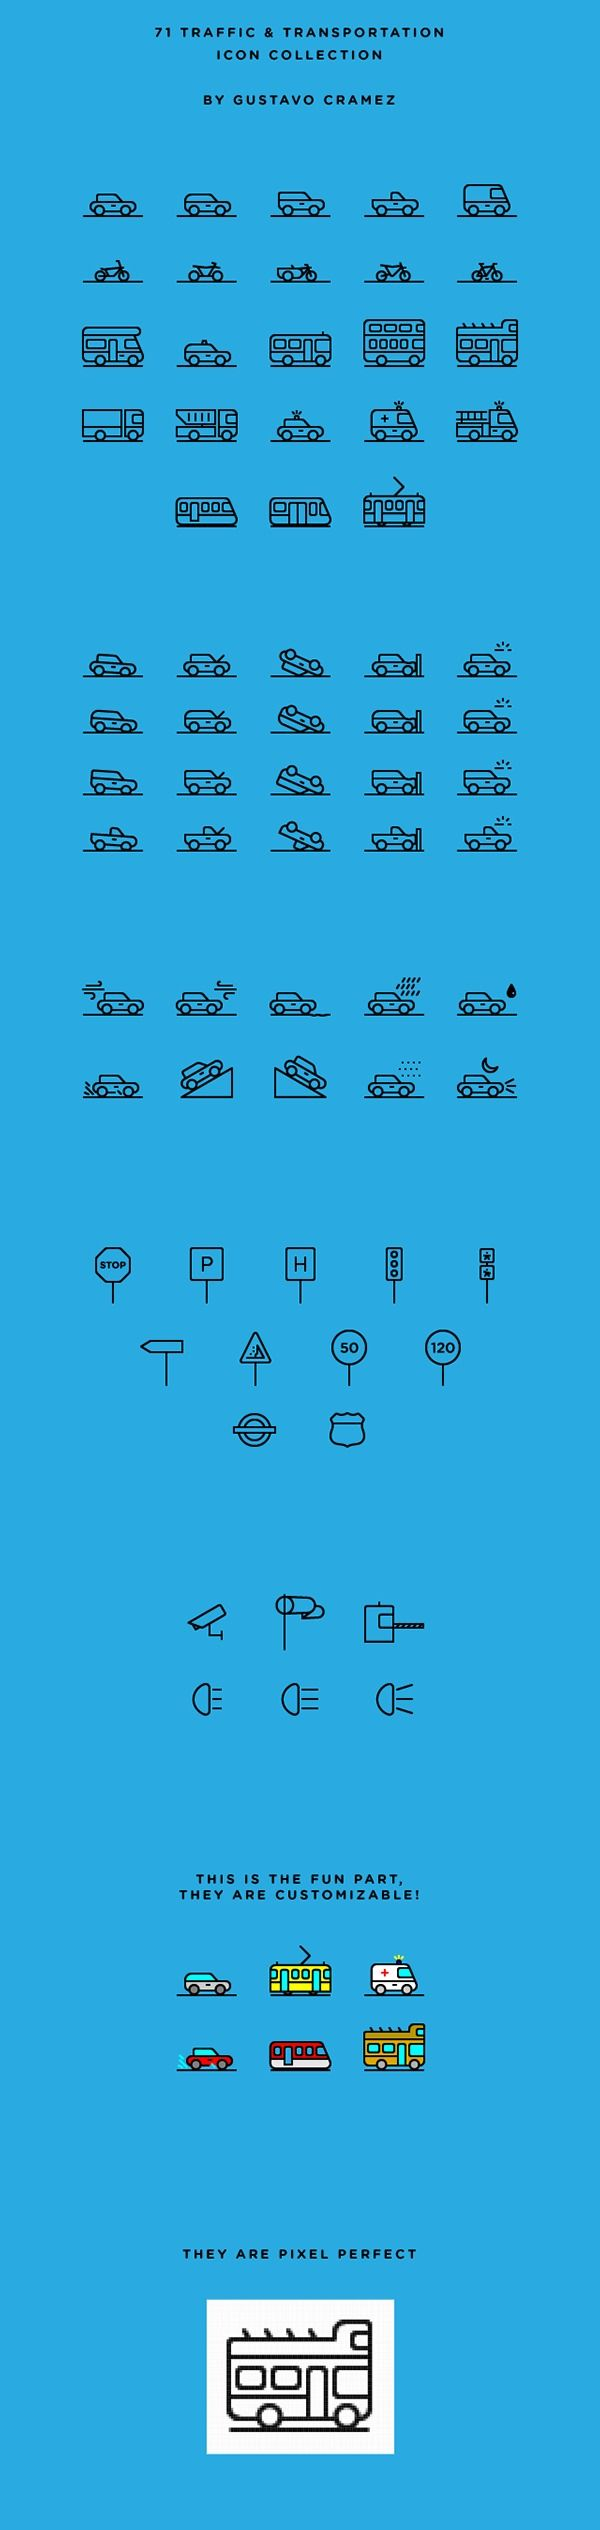 Icon / 71 Traffic & Transportation Icon Collection | Free on Behance